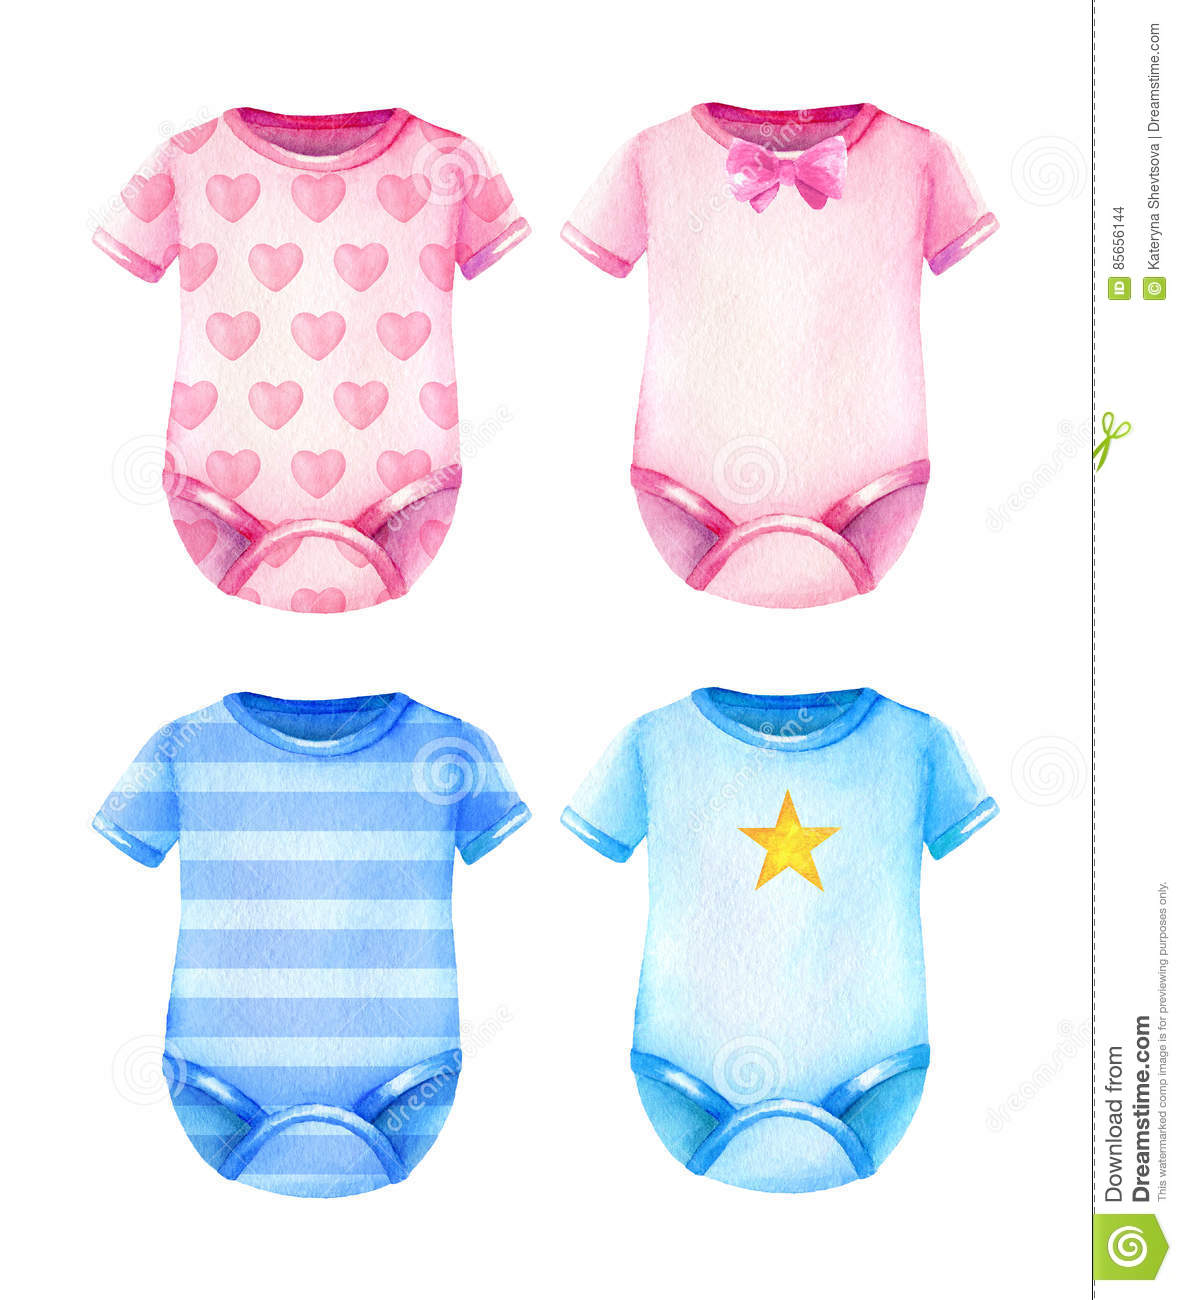 Cute Baby Bodysuits and Kids Shirts I Am The Birthday Boy Little Royaltee